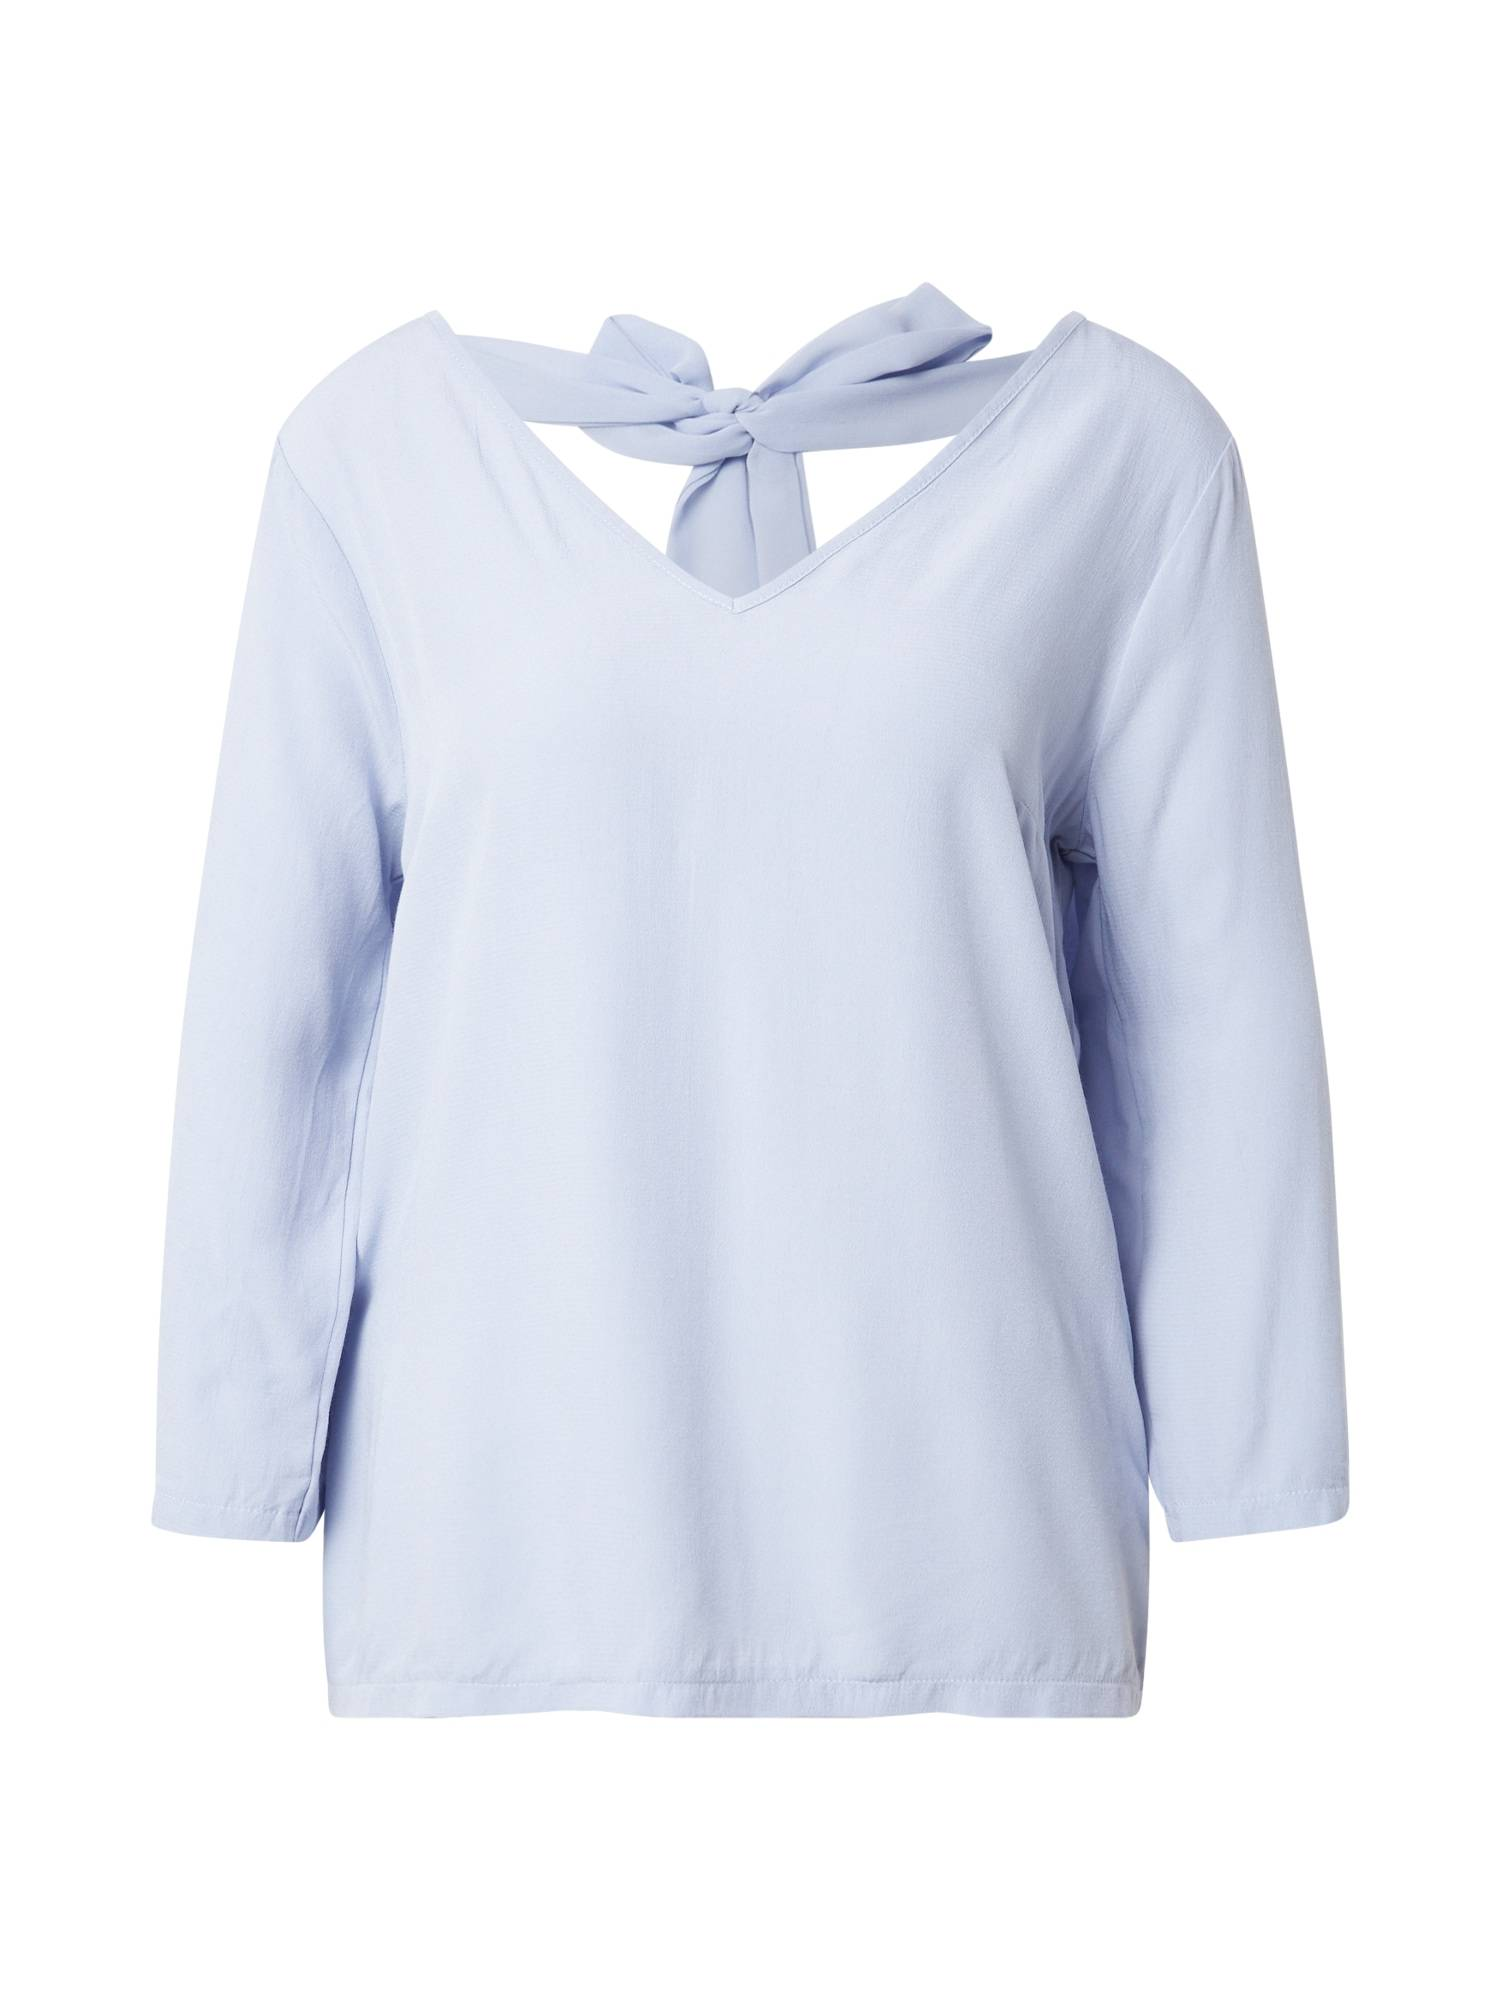 ABOUT YOU Chemisier 'Farine'  - Bleu - Taille: 42 - female